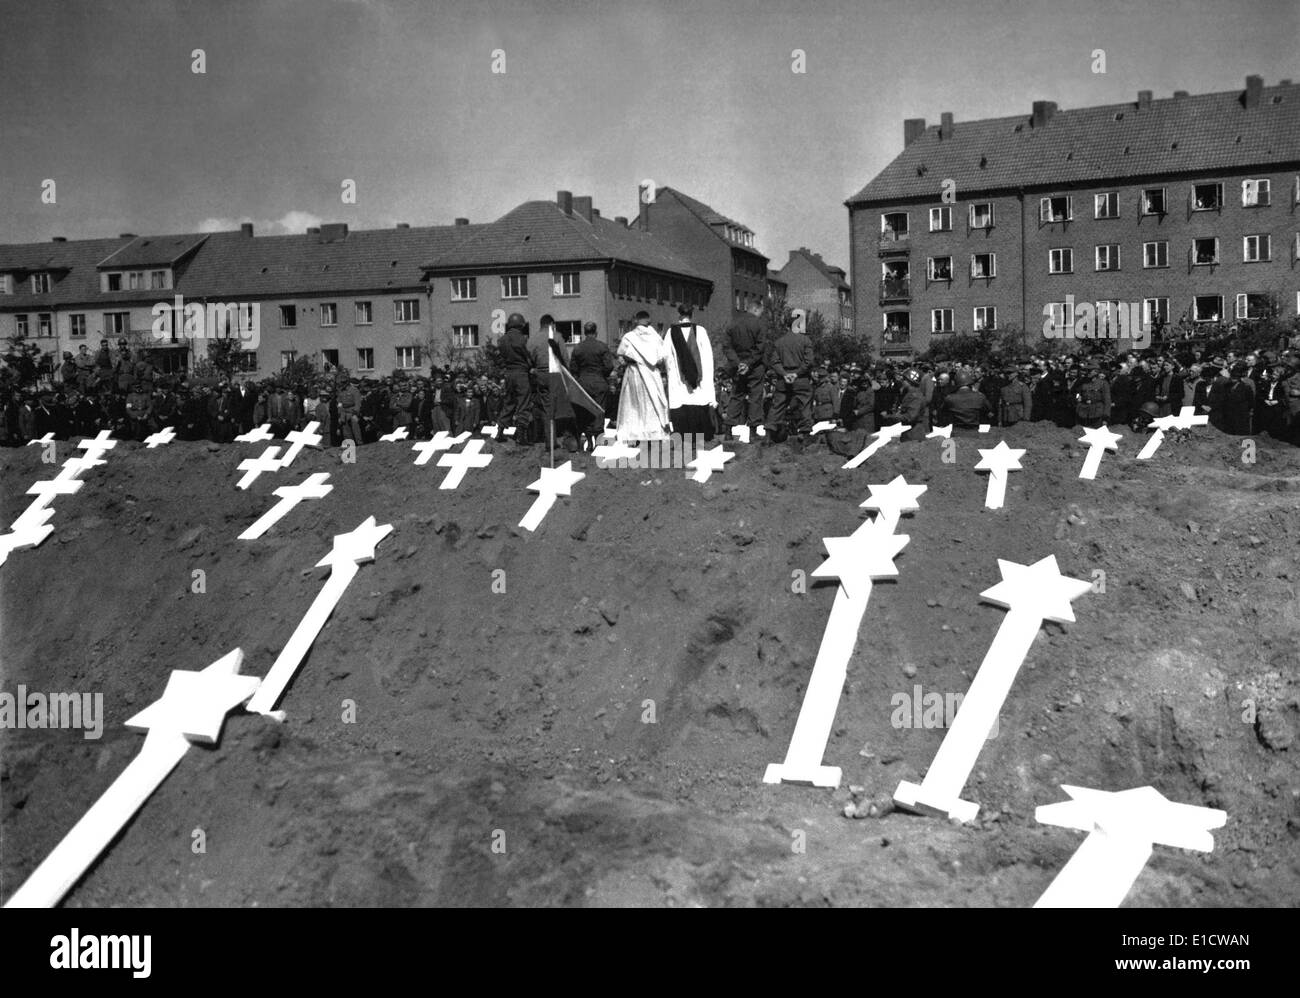 Markers are for the graves of 80 victims of the Nazis found in Ludwigslust, Germany. The entire civilian population Stock Photo